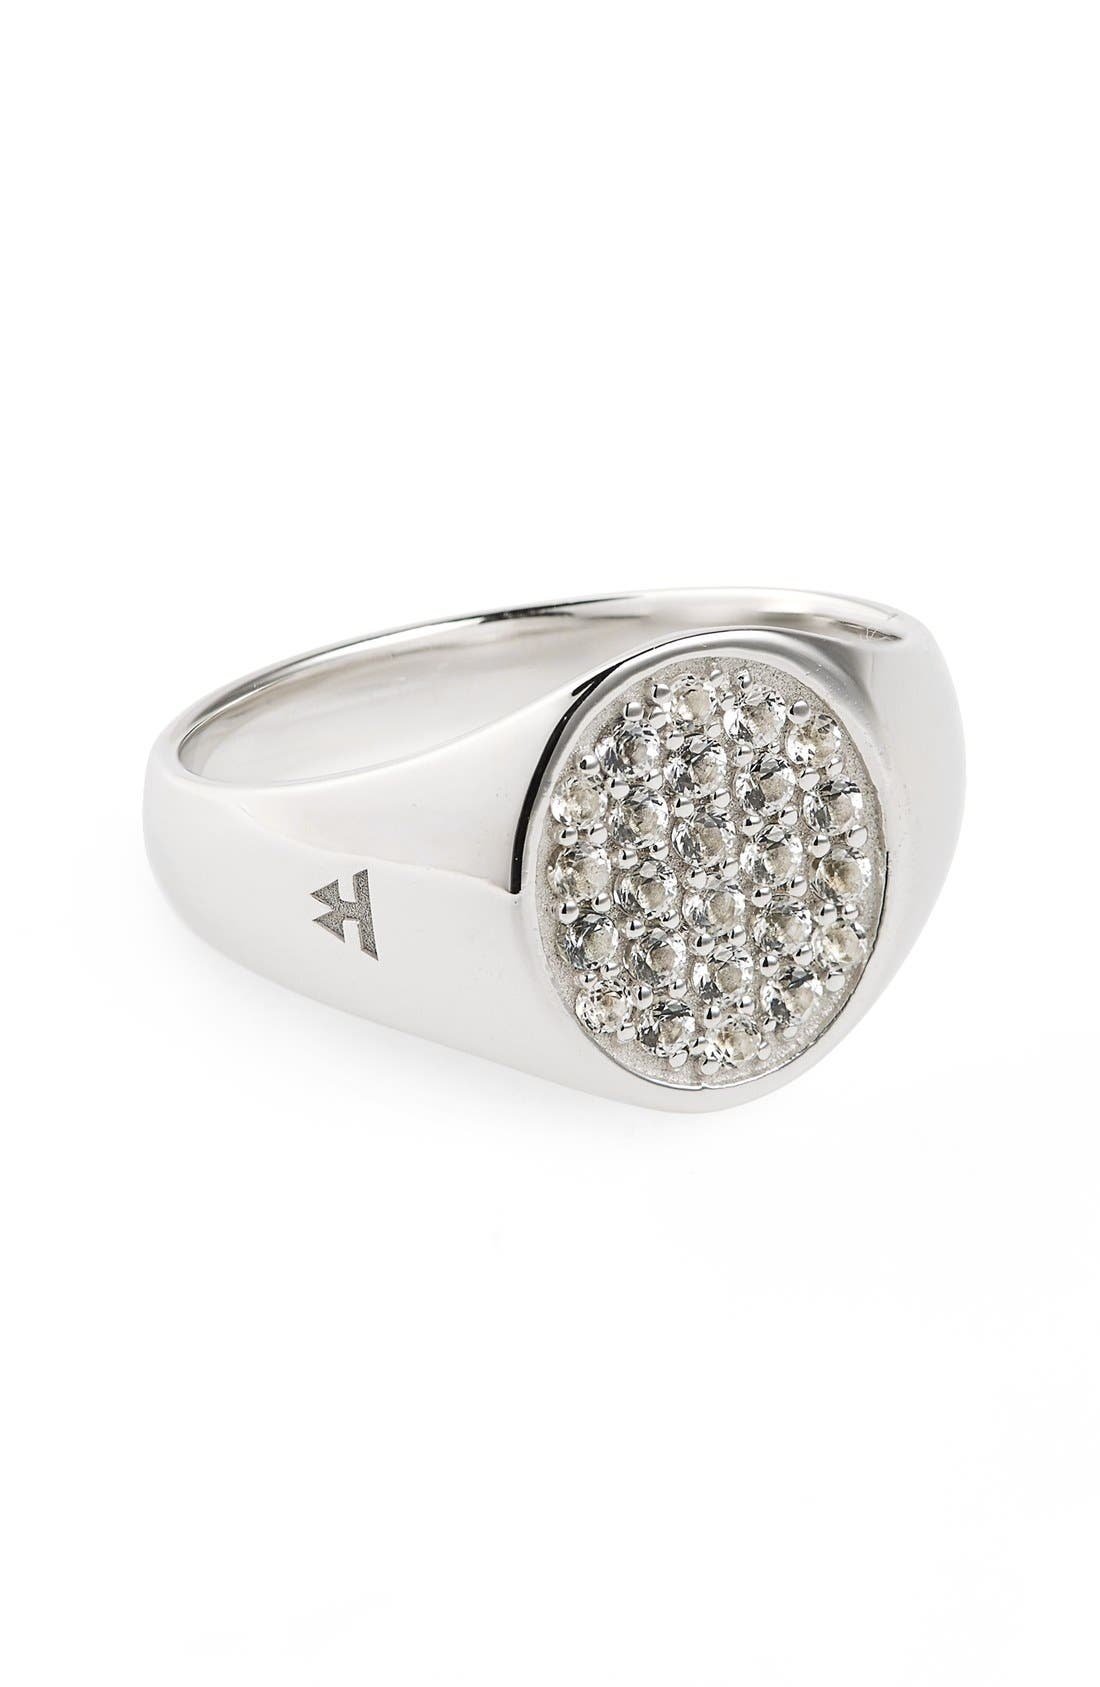 Tom Wood Mini Oval White Topaz Signet Ring